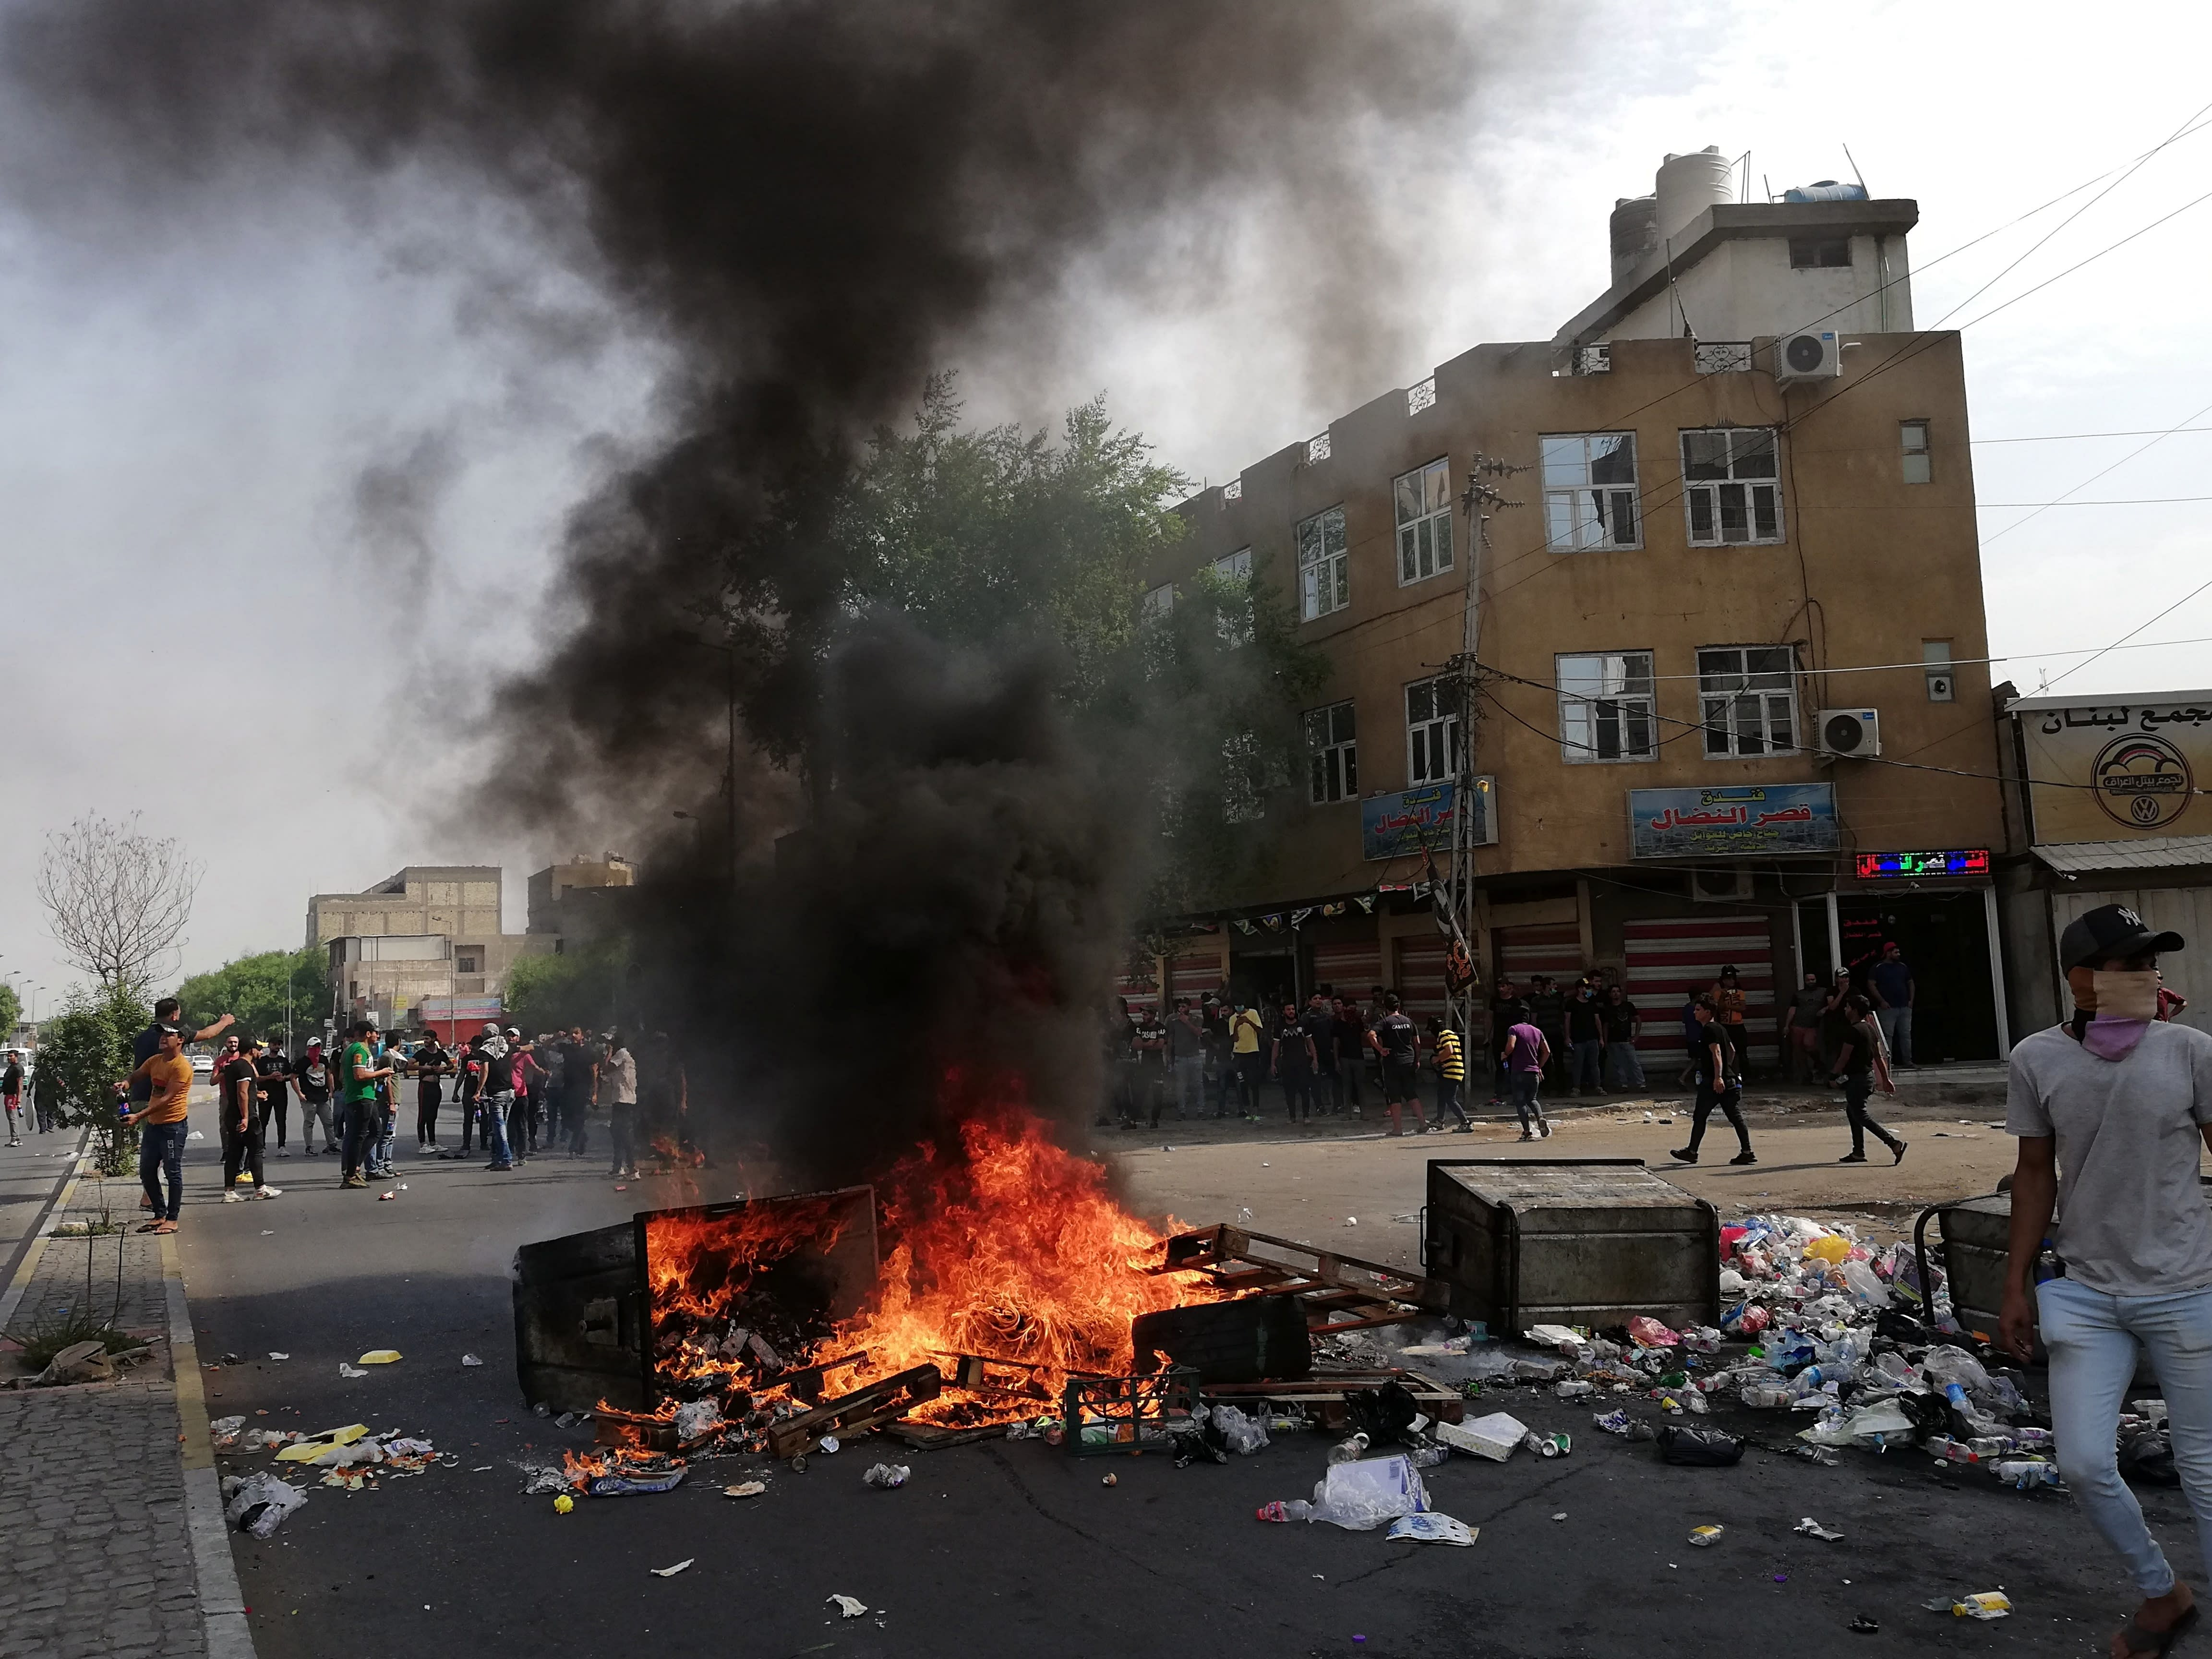 Anti-government protesters set fire and block roads in Baghdad, Iraq, Wednesday, Oct. 2, 2019. Security forces fired in the air and used tear gas Wednesday to disperse groups of demonstrators in Baghdad Wednesday, killing at least one and injuring six in renewed protests after violent confrontations between protesters and police a day earlier, officials said. (AP Photo/Hadi Mizban)